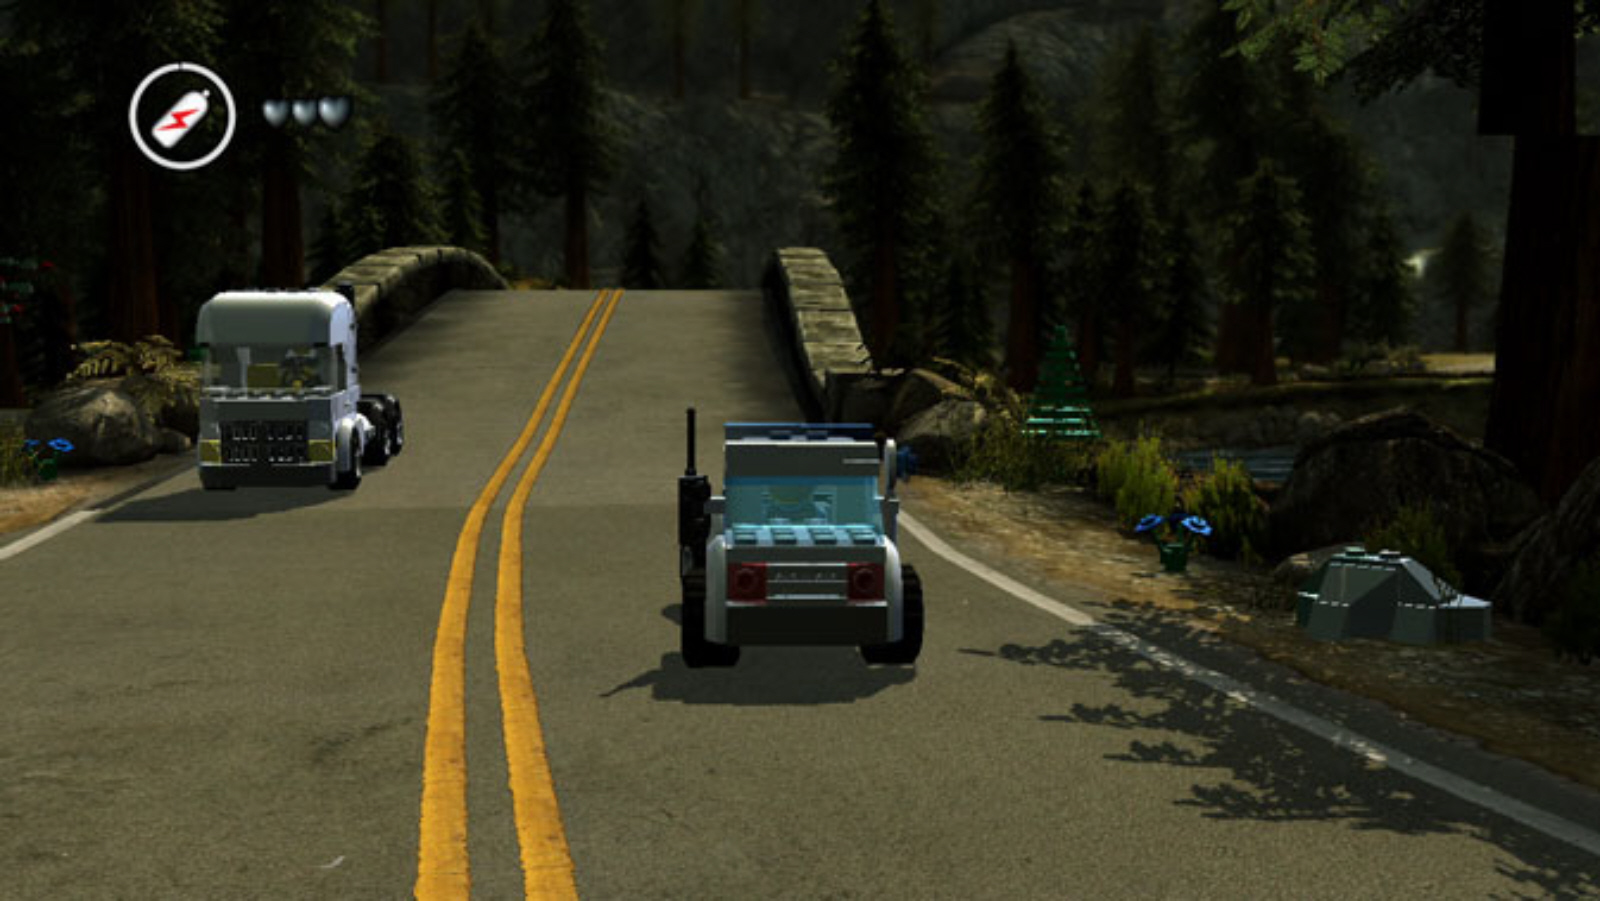 Police And Robber Car Games